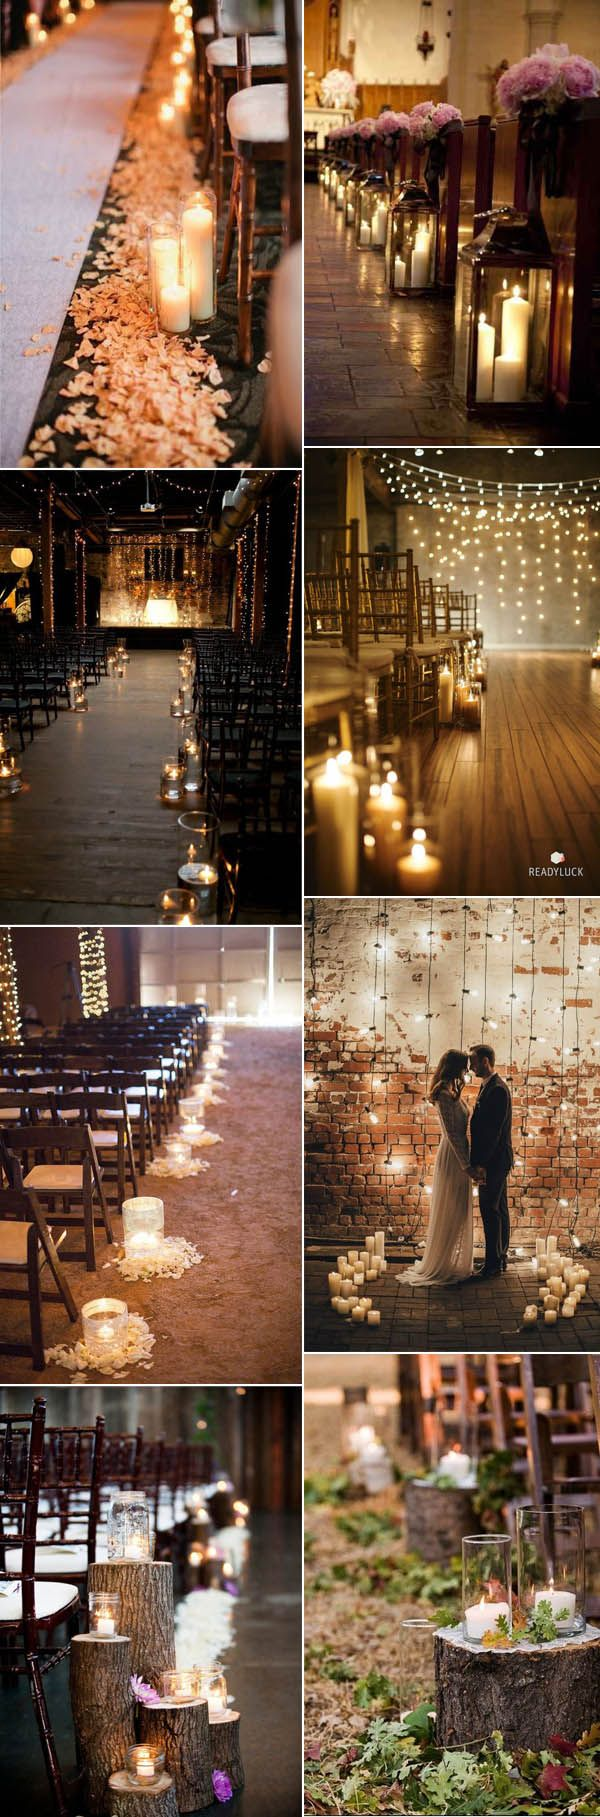 beautiful wedding ceremony aisle decoration ideas with candle lights                                                                                                                                                                                 More